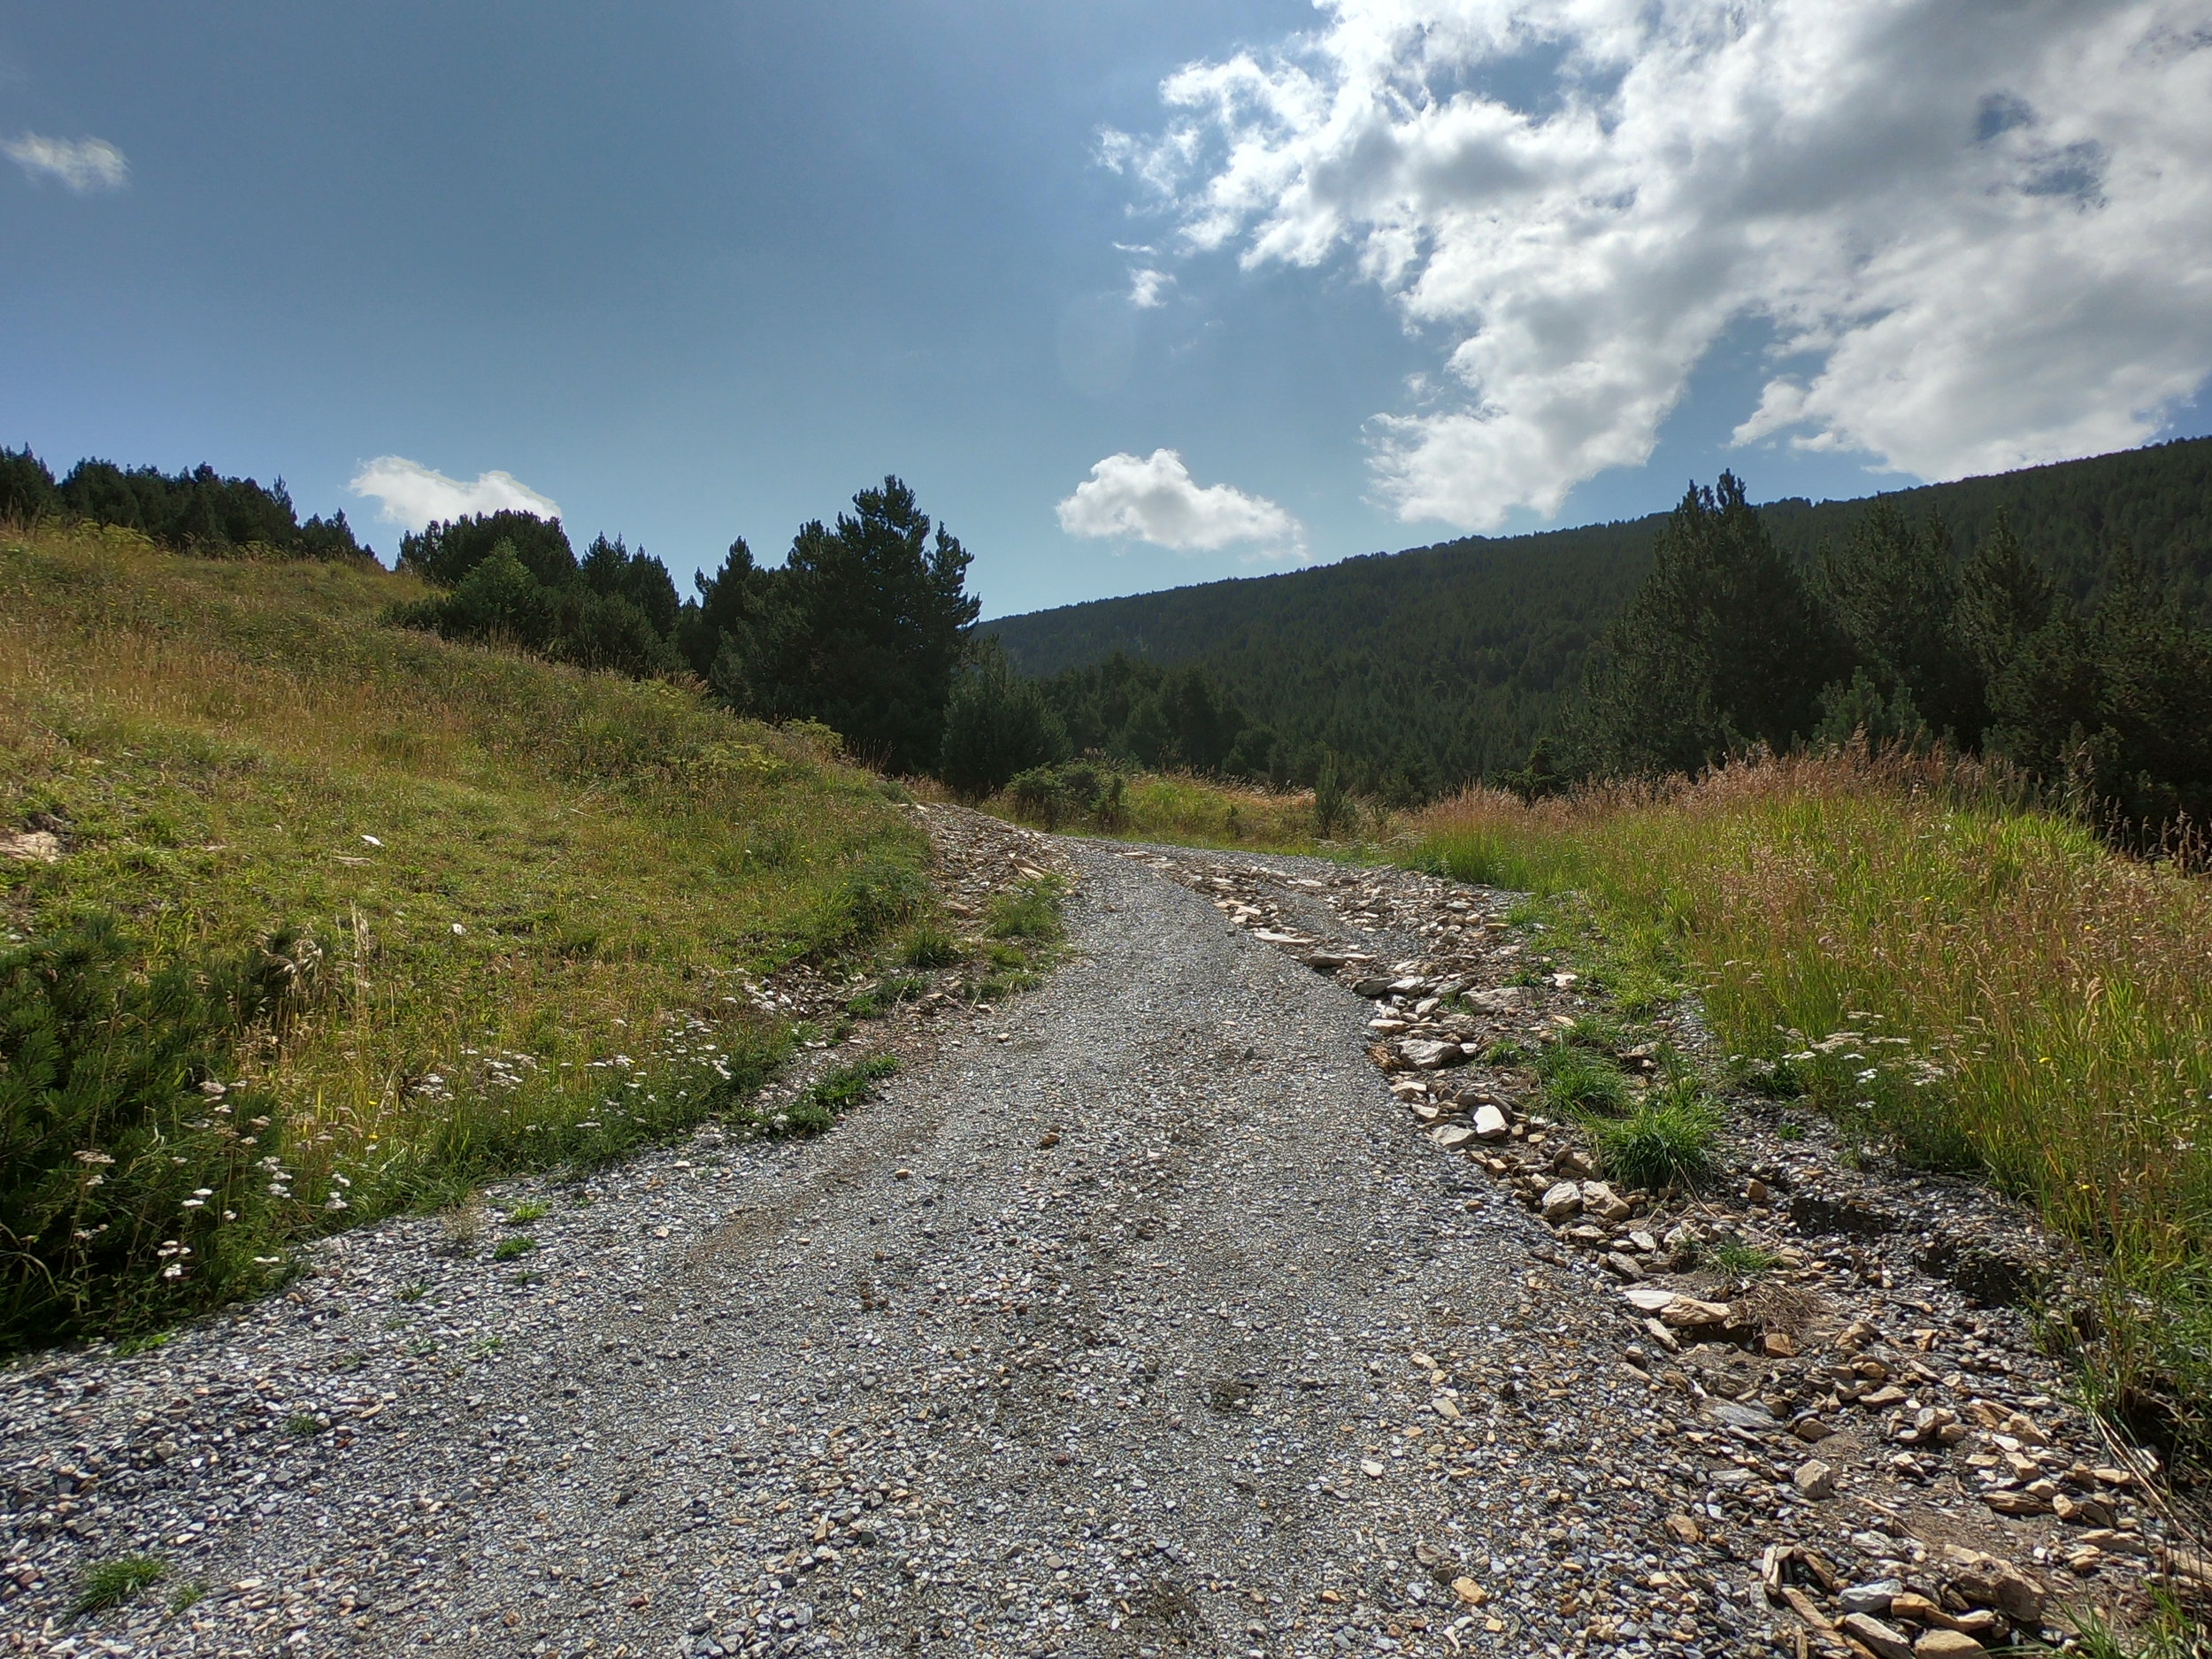 Gravel road (ski run in winter). This is about 3 km into the race.